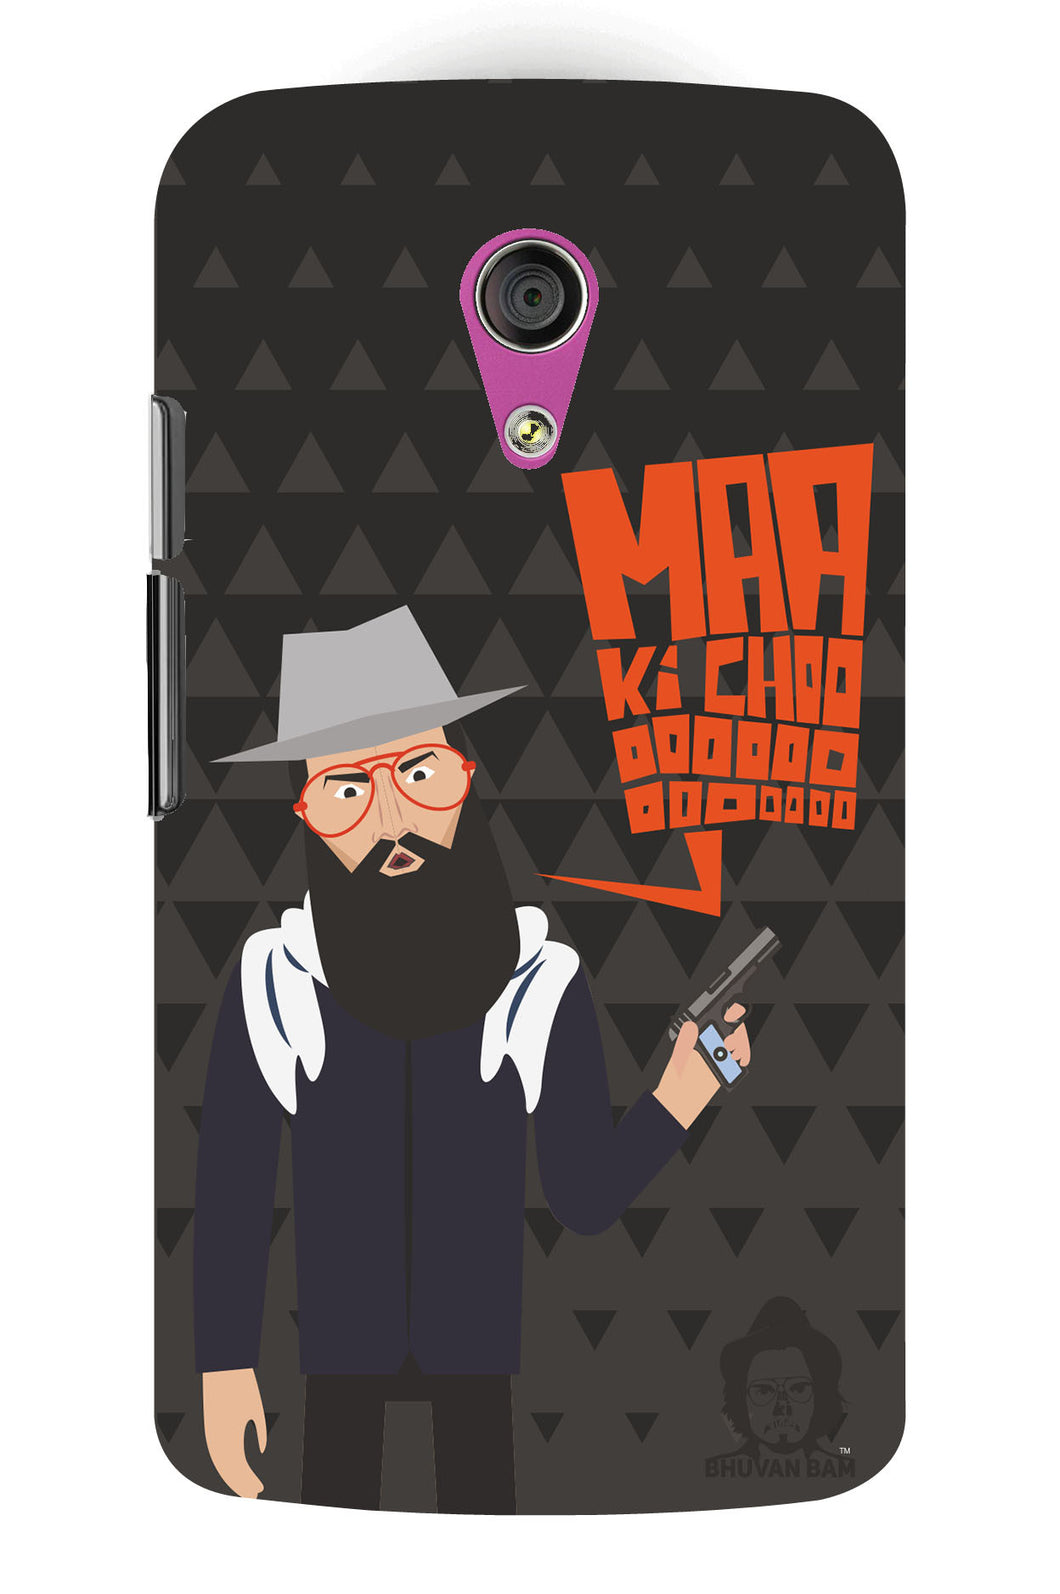 Papa Maaki*** Edition for Moto G2